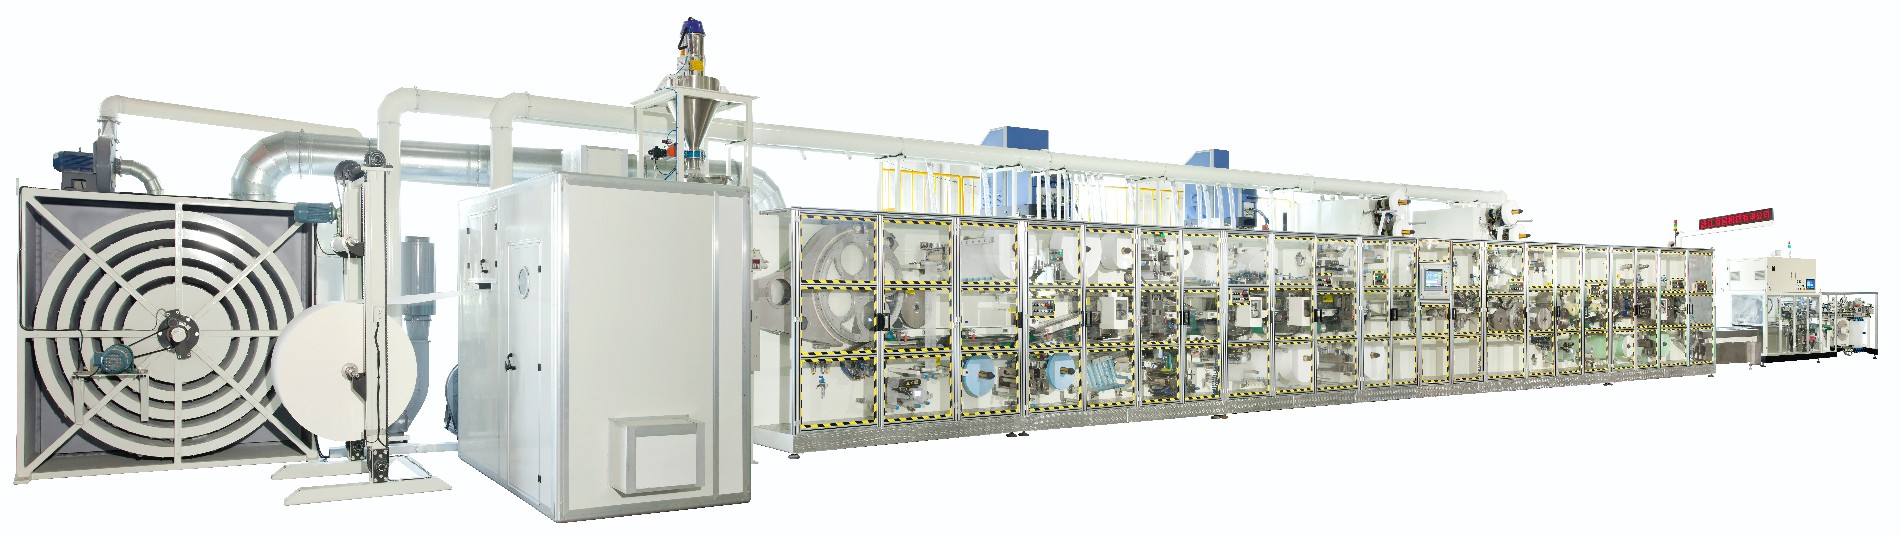 Sanitary Pad Production Line